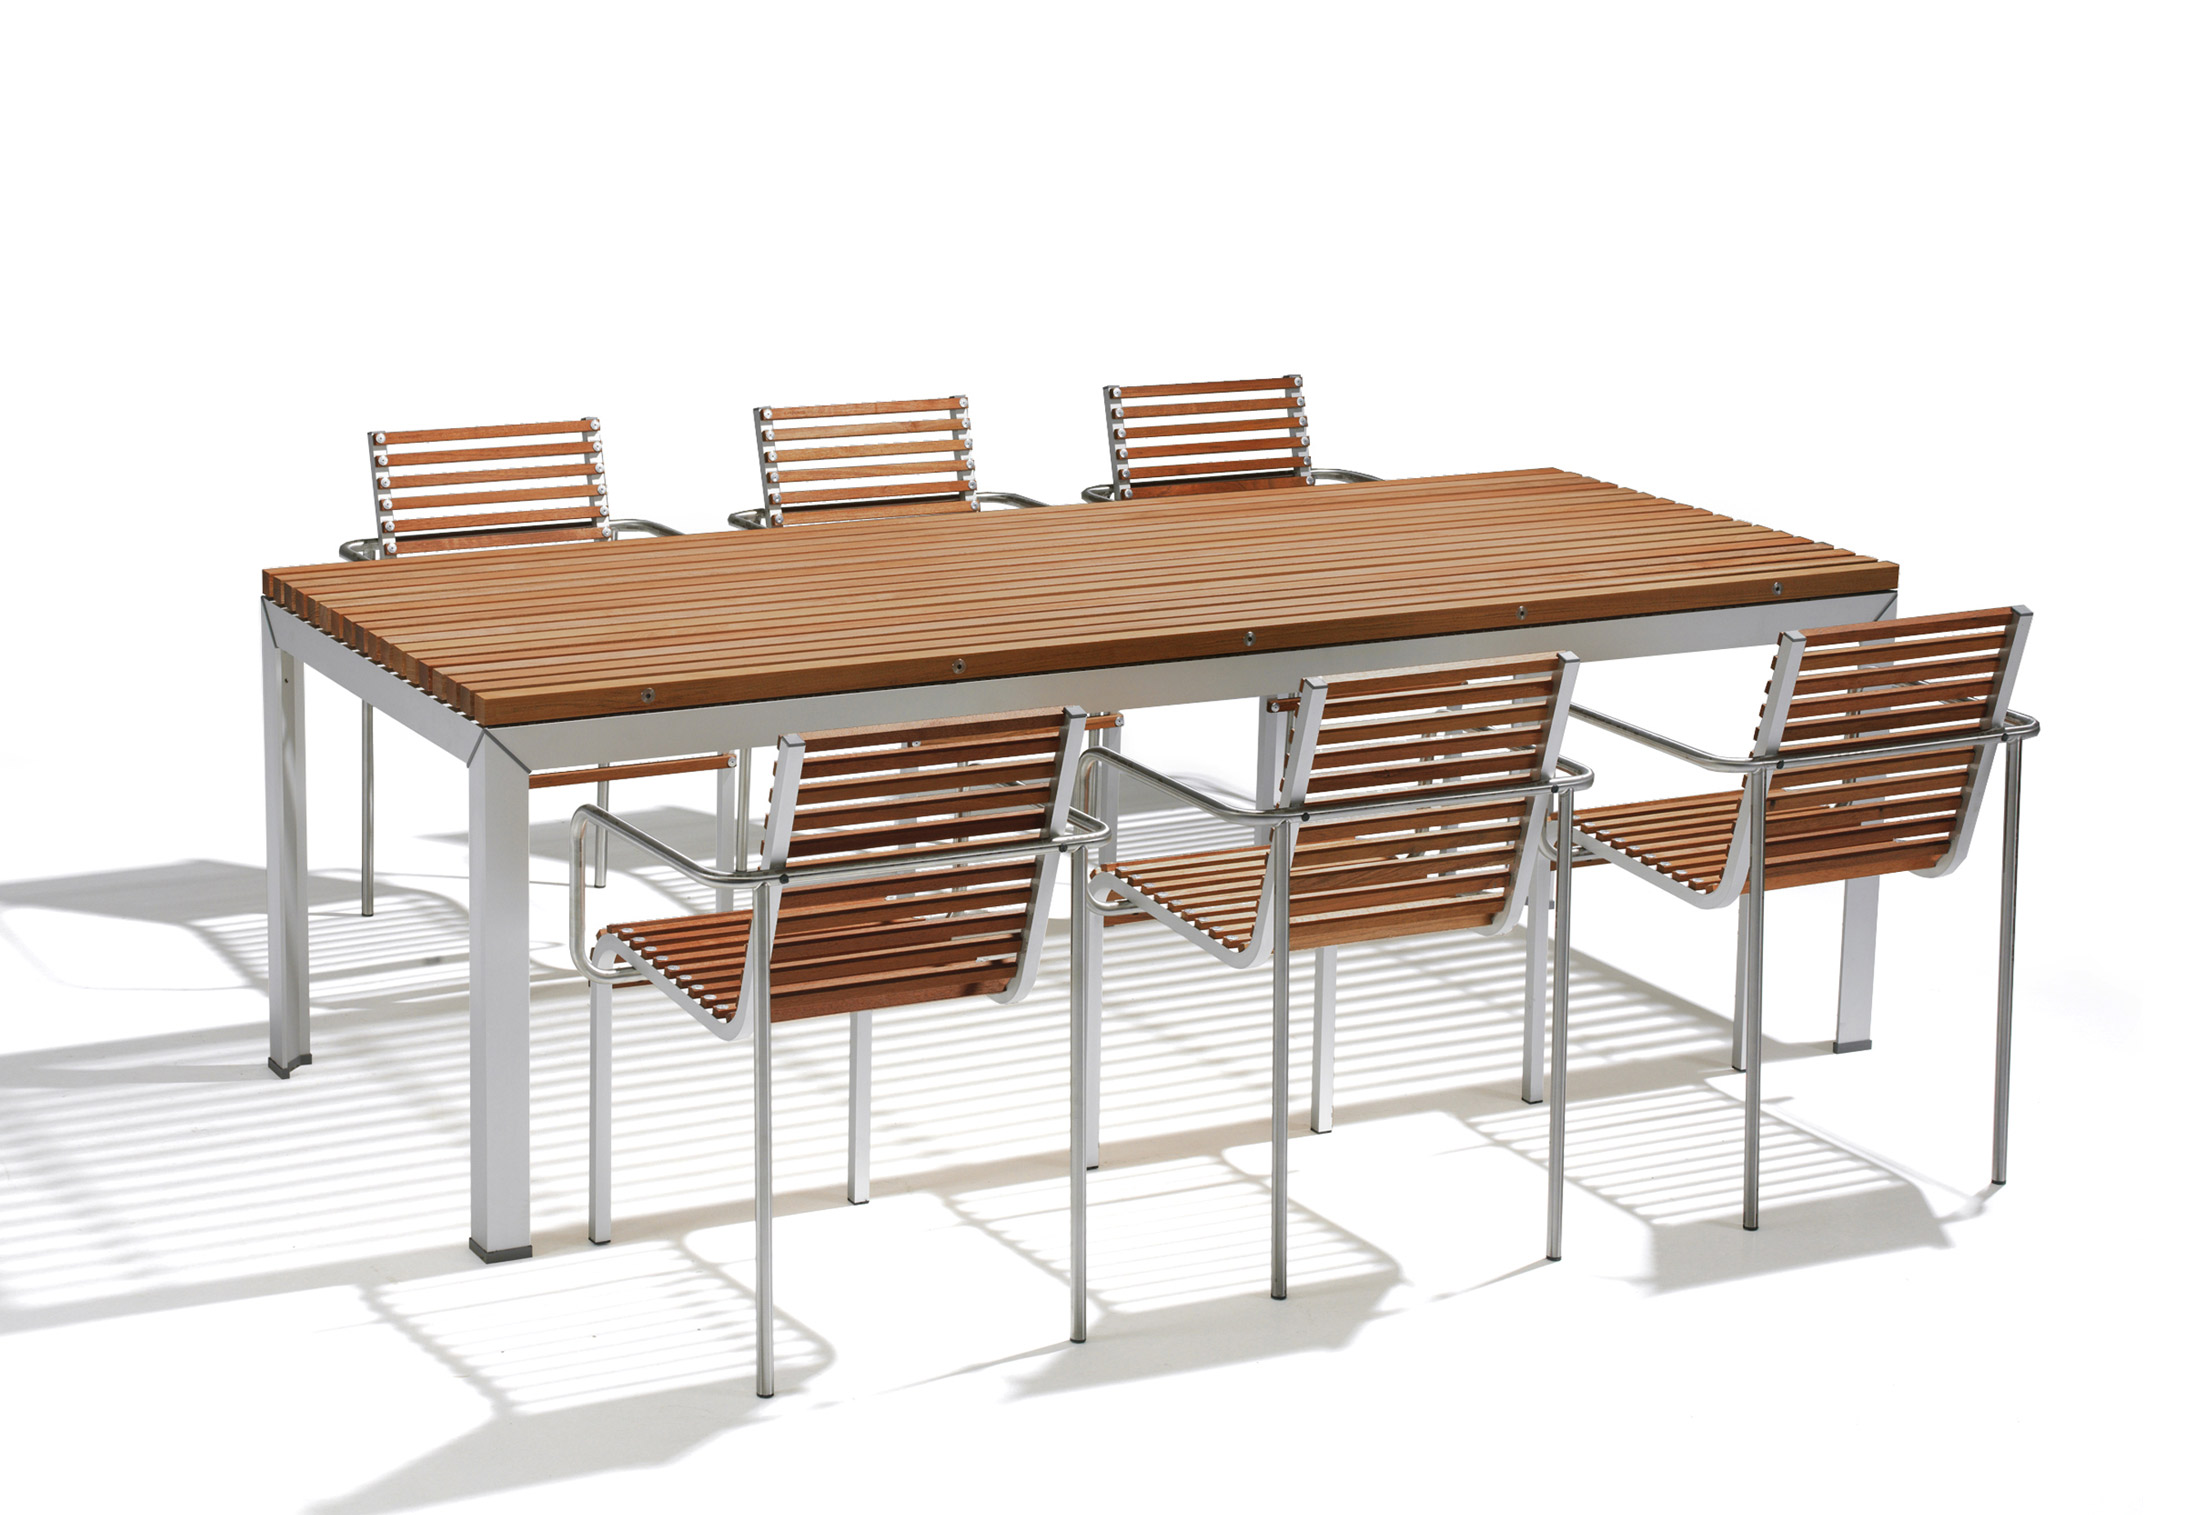 ... Extempore chairs ...